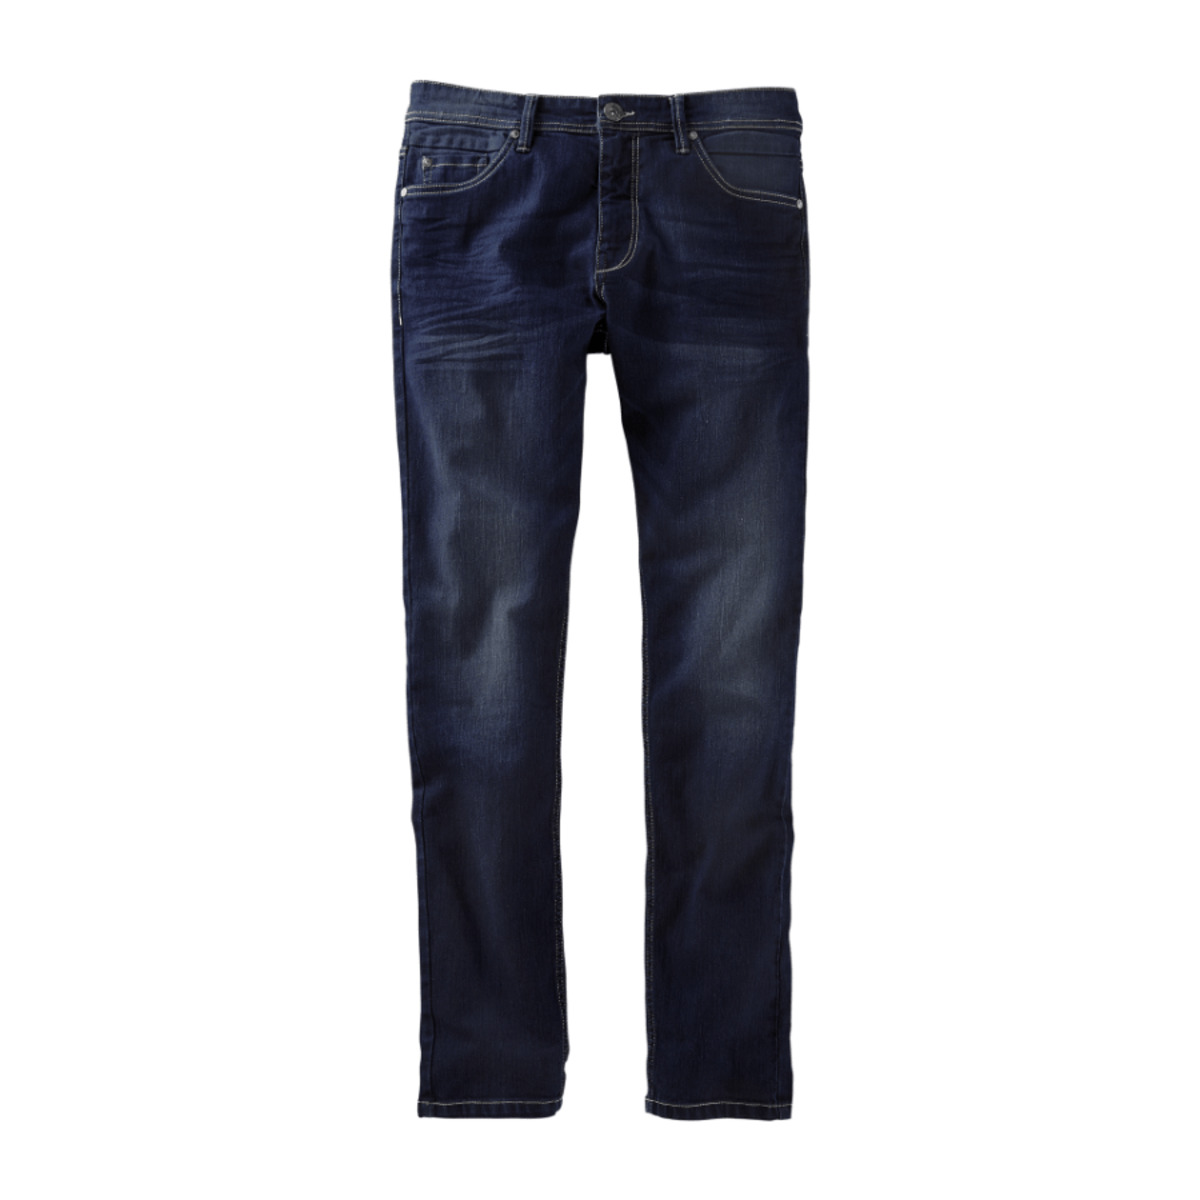 Bild 3 von STRAIGHT UP  	   Super Stretch Jeans